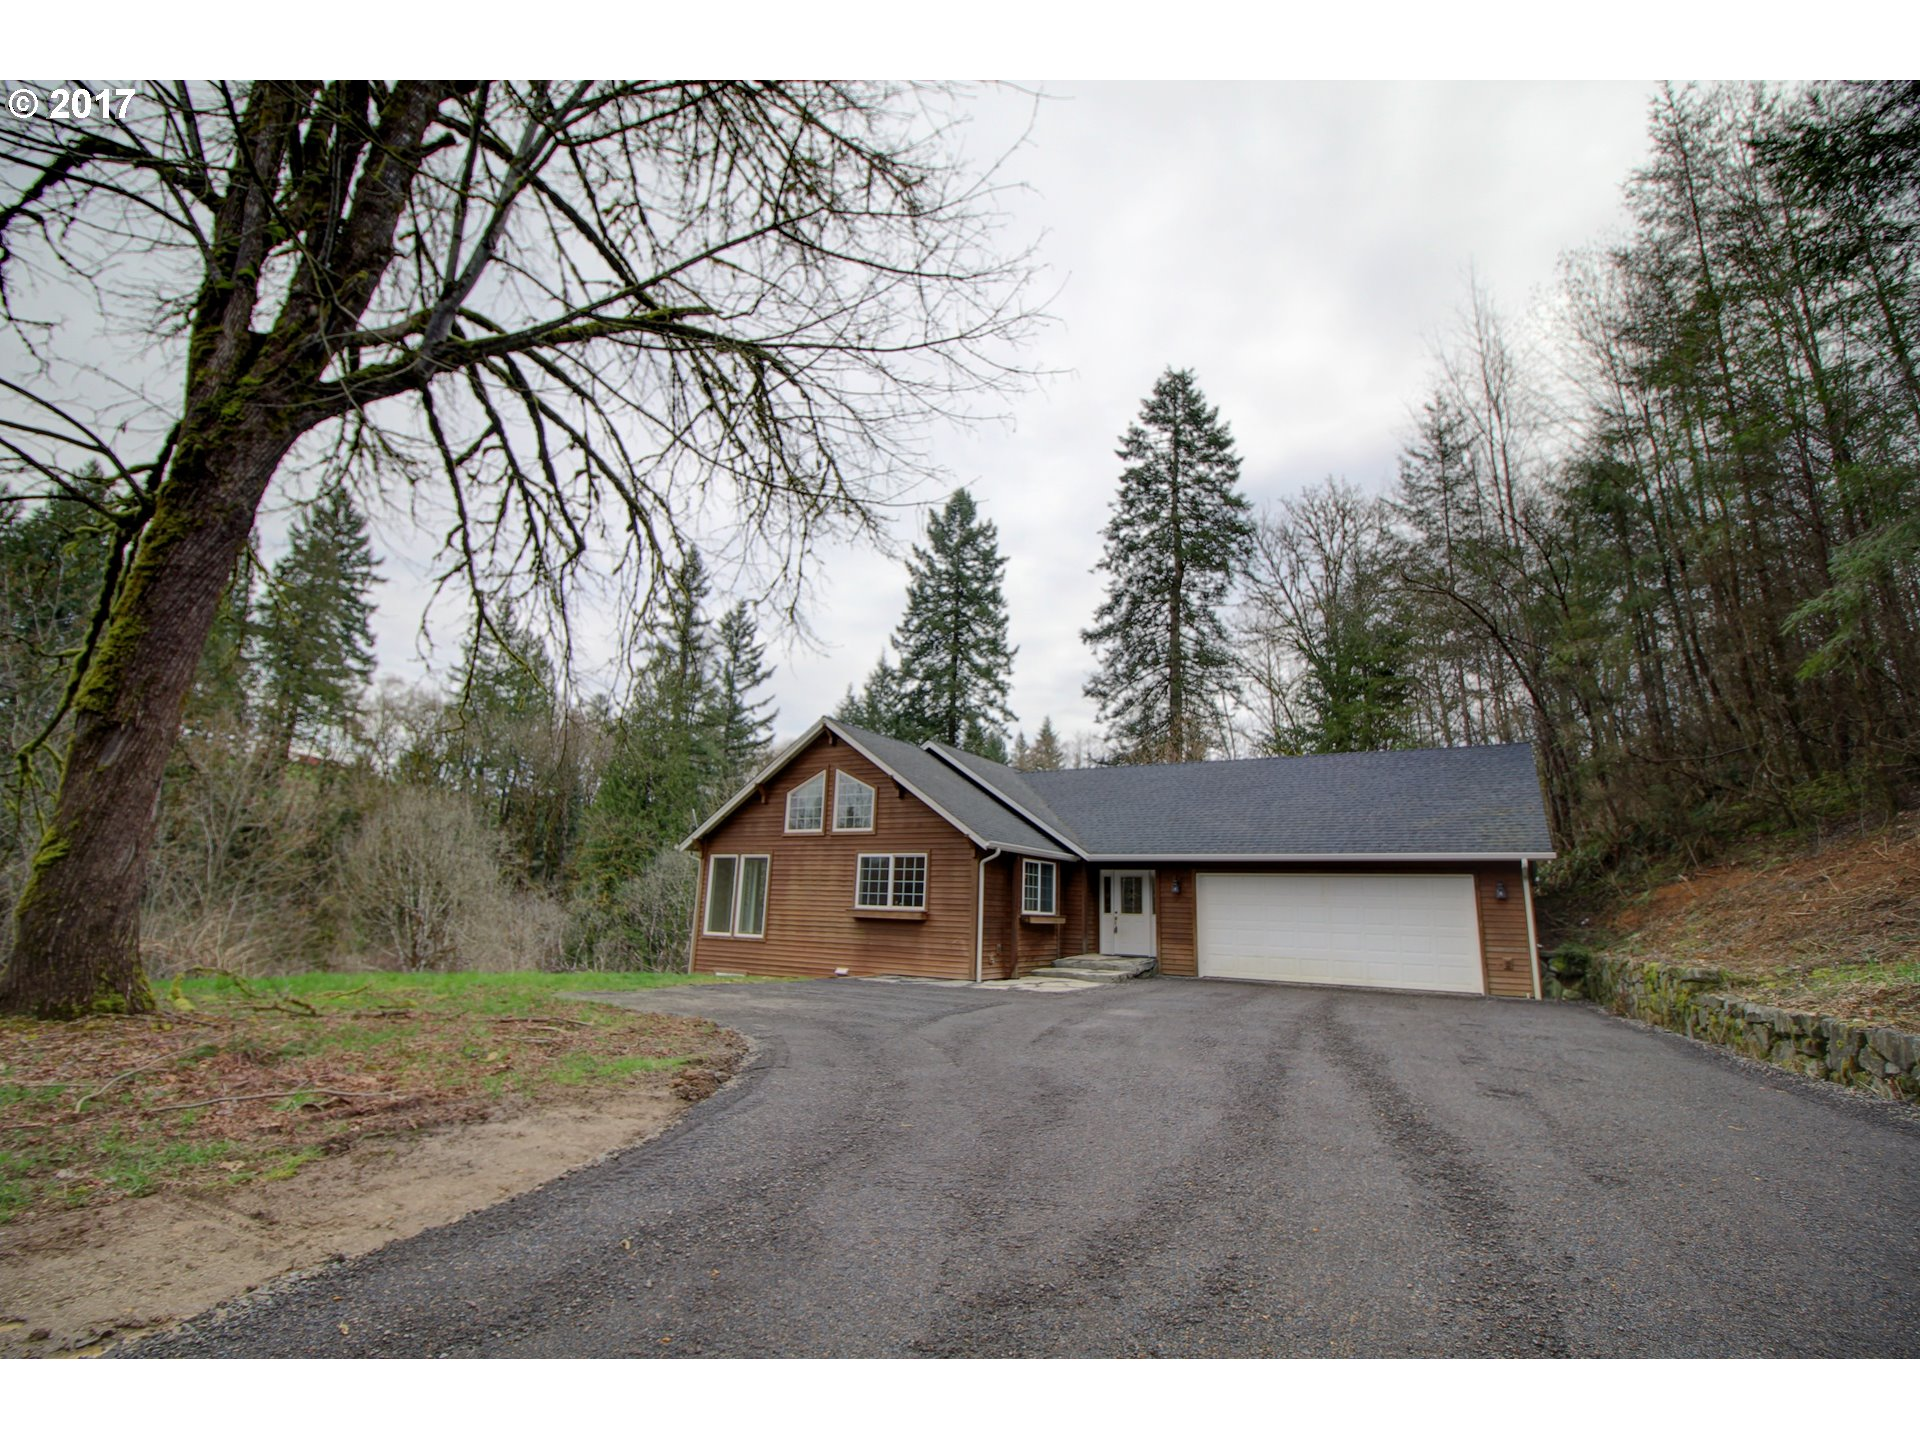 Amazing 11.5 gated, PRIVATE acres with over 3,000 sq ft one level home with new, fully finished daylight basement featuring almost 9' ceilings. Open, bright kitchen with tons of storage. Very large family room up with wood stove and large deck overlooking the acreage and the creek running through. Master on main plus one additional bedroom up. Two large bedrooms down plus extra large bonus room down. So much more to see and love!